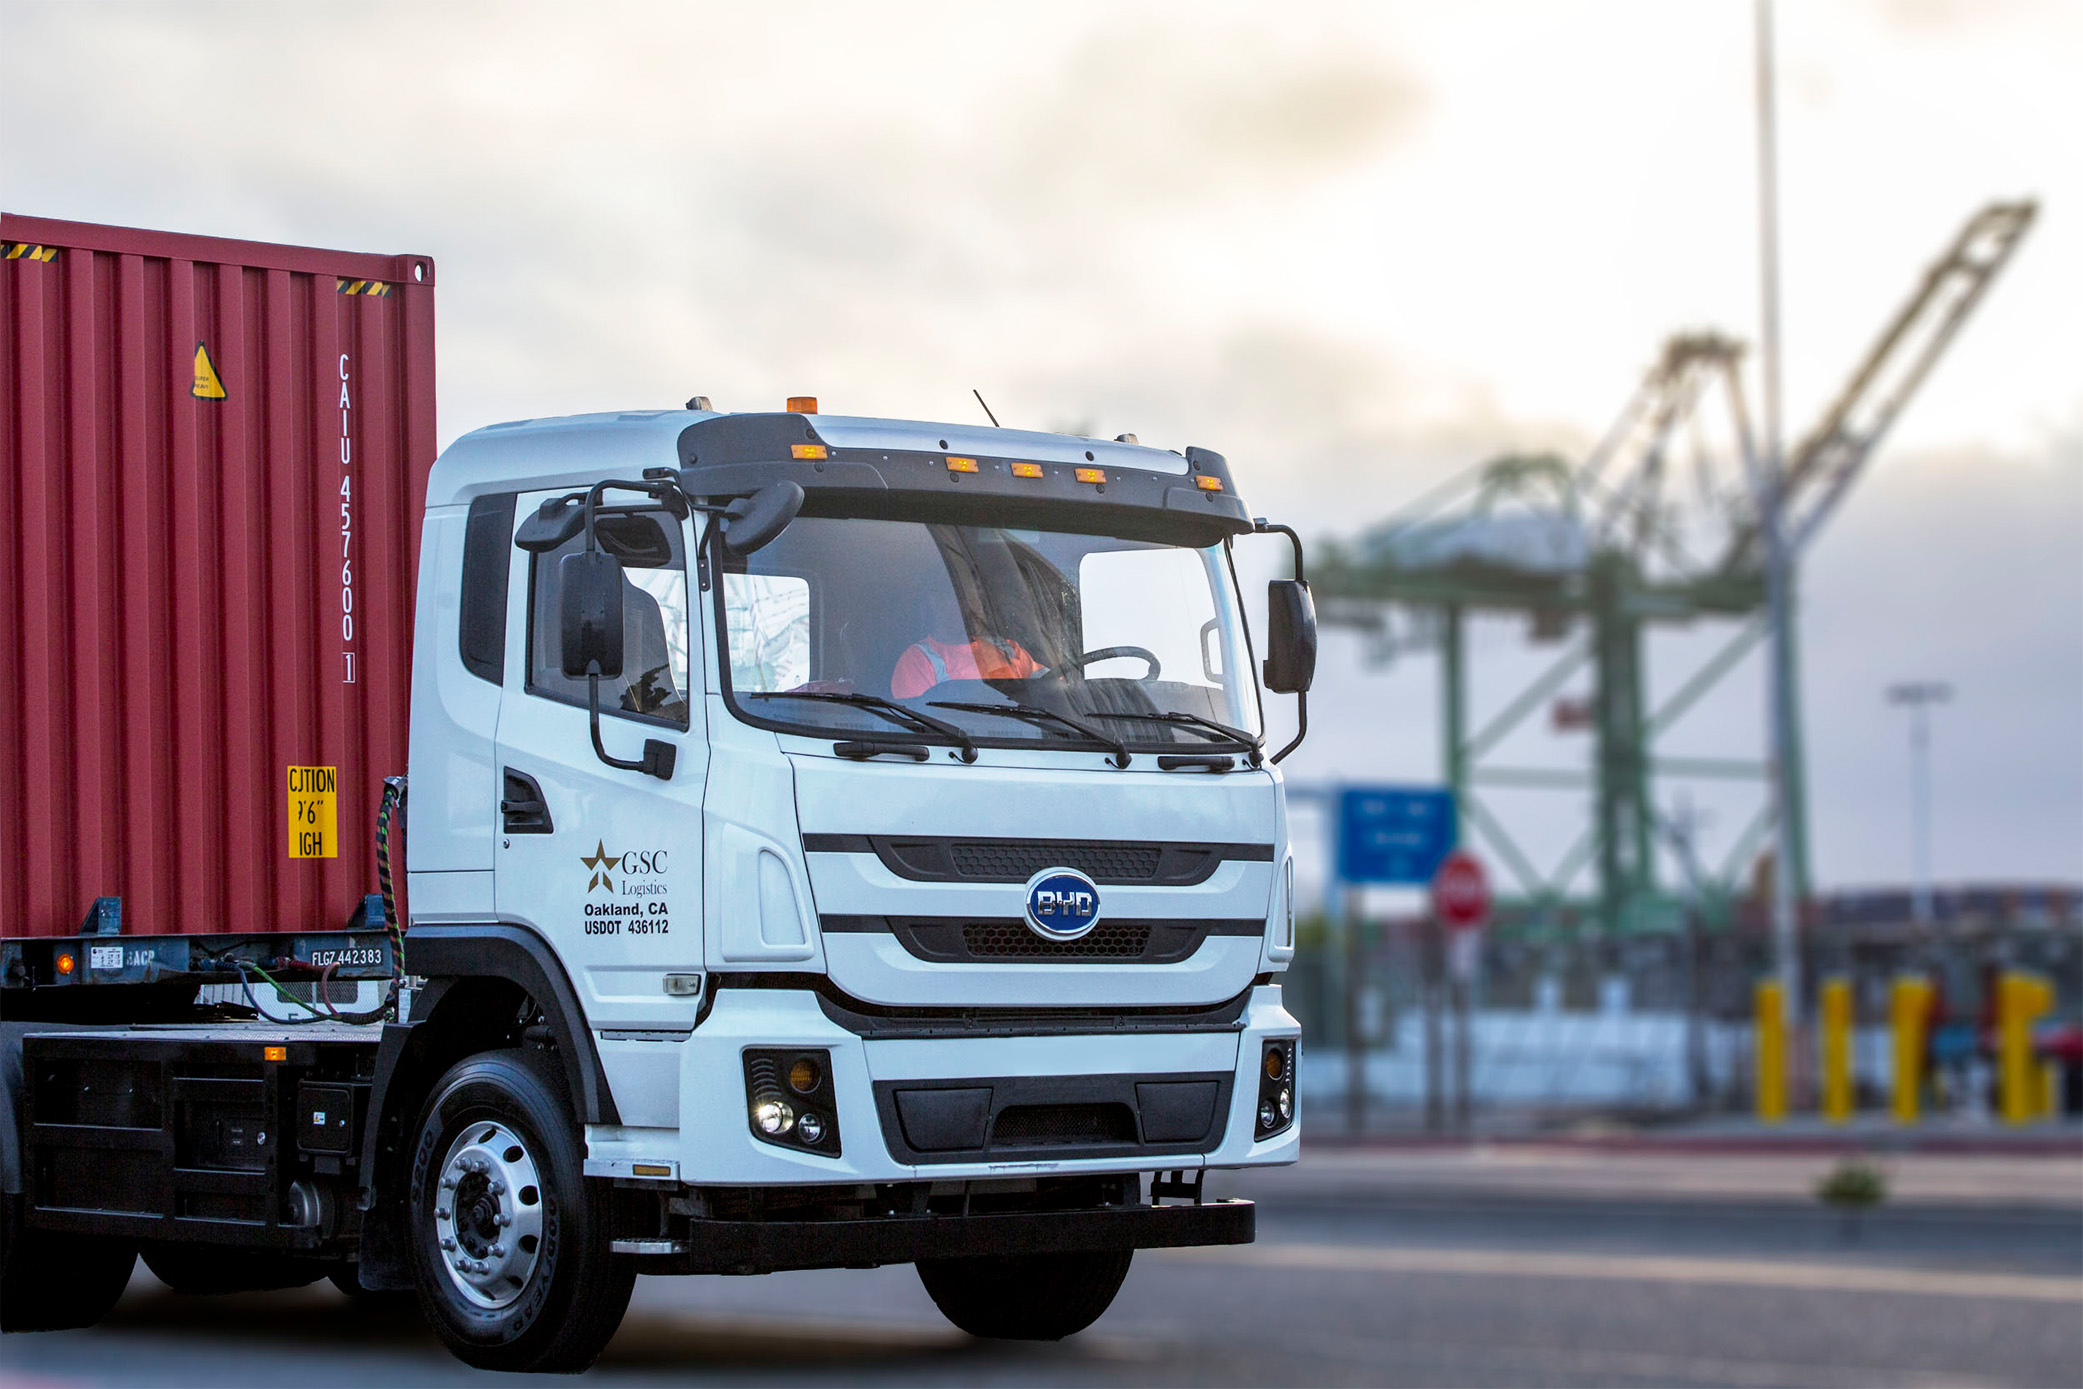 Electric truck at the Port of Oakland. Photo courtesy of GSC Logistics